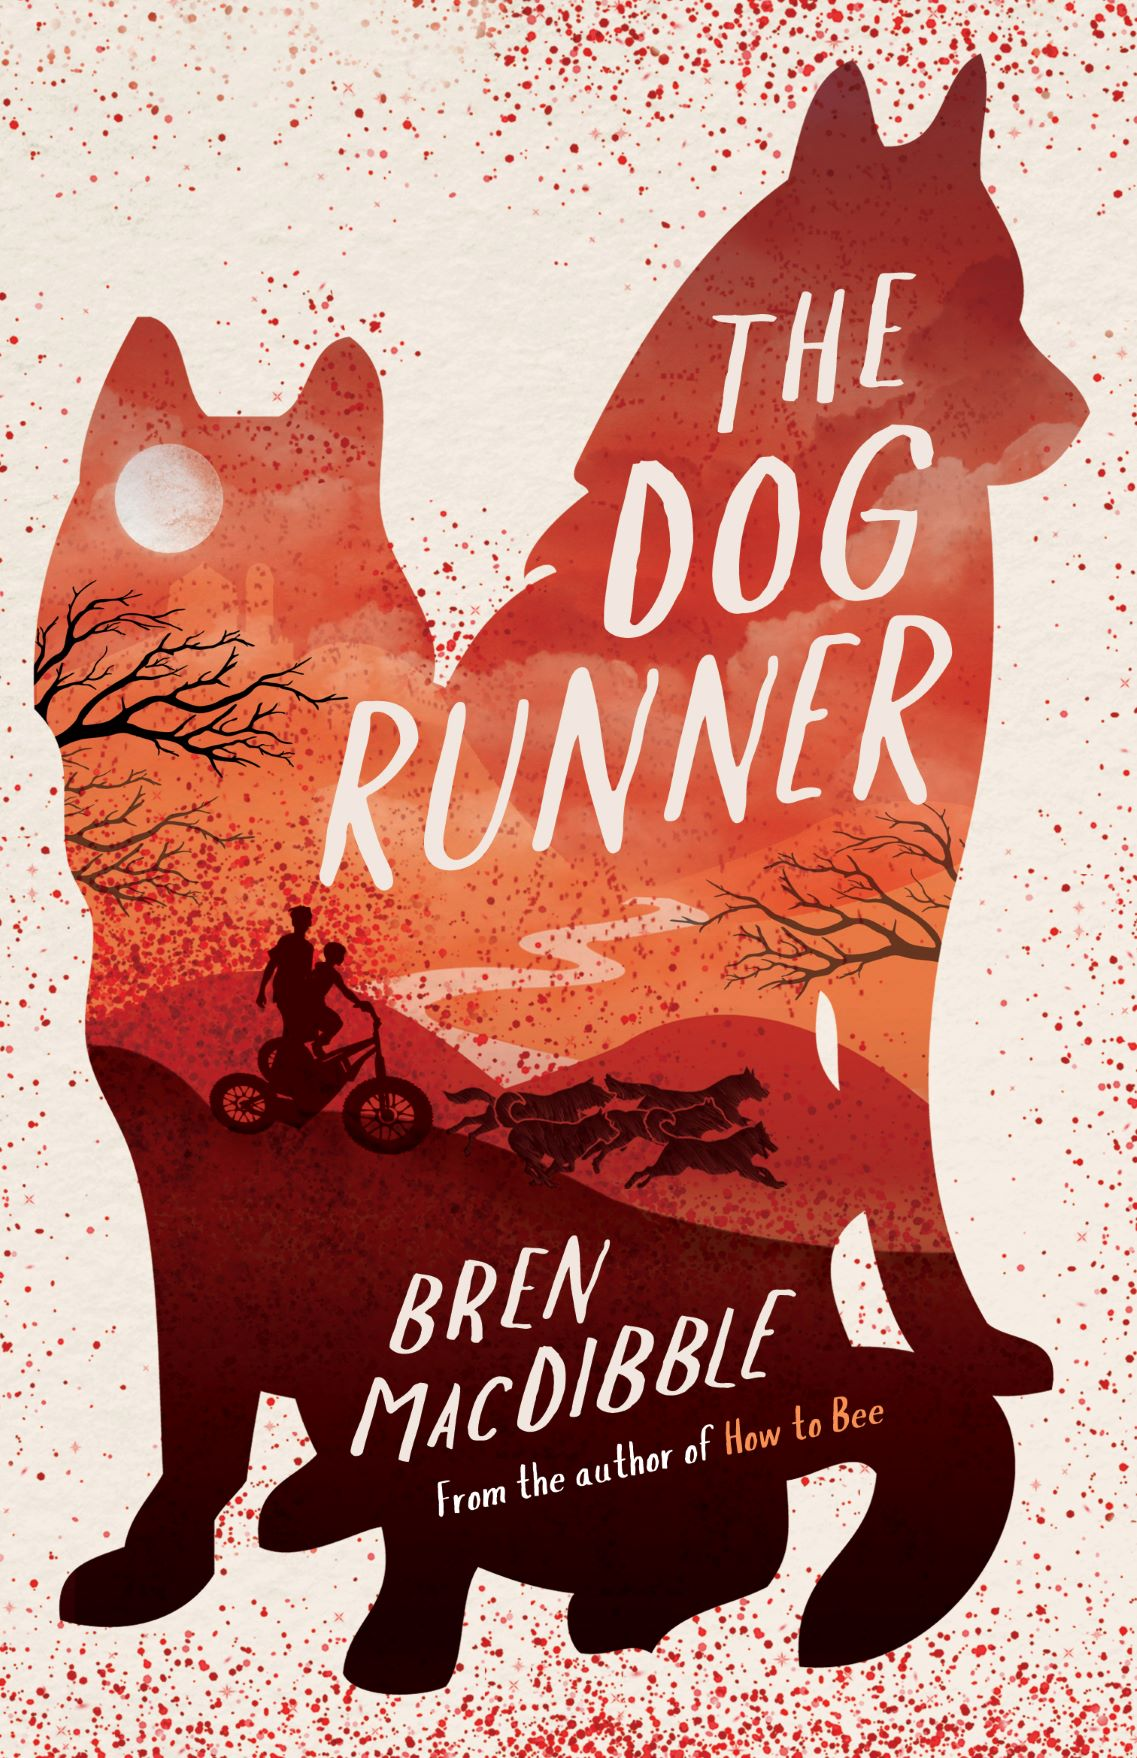 The Dog Runner, book cover